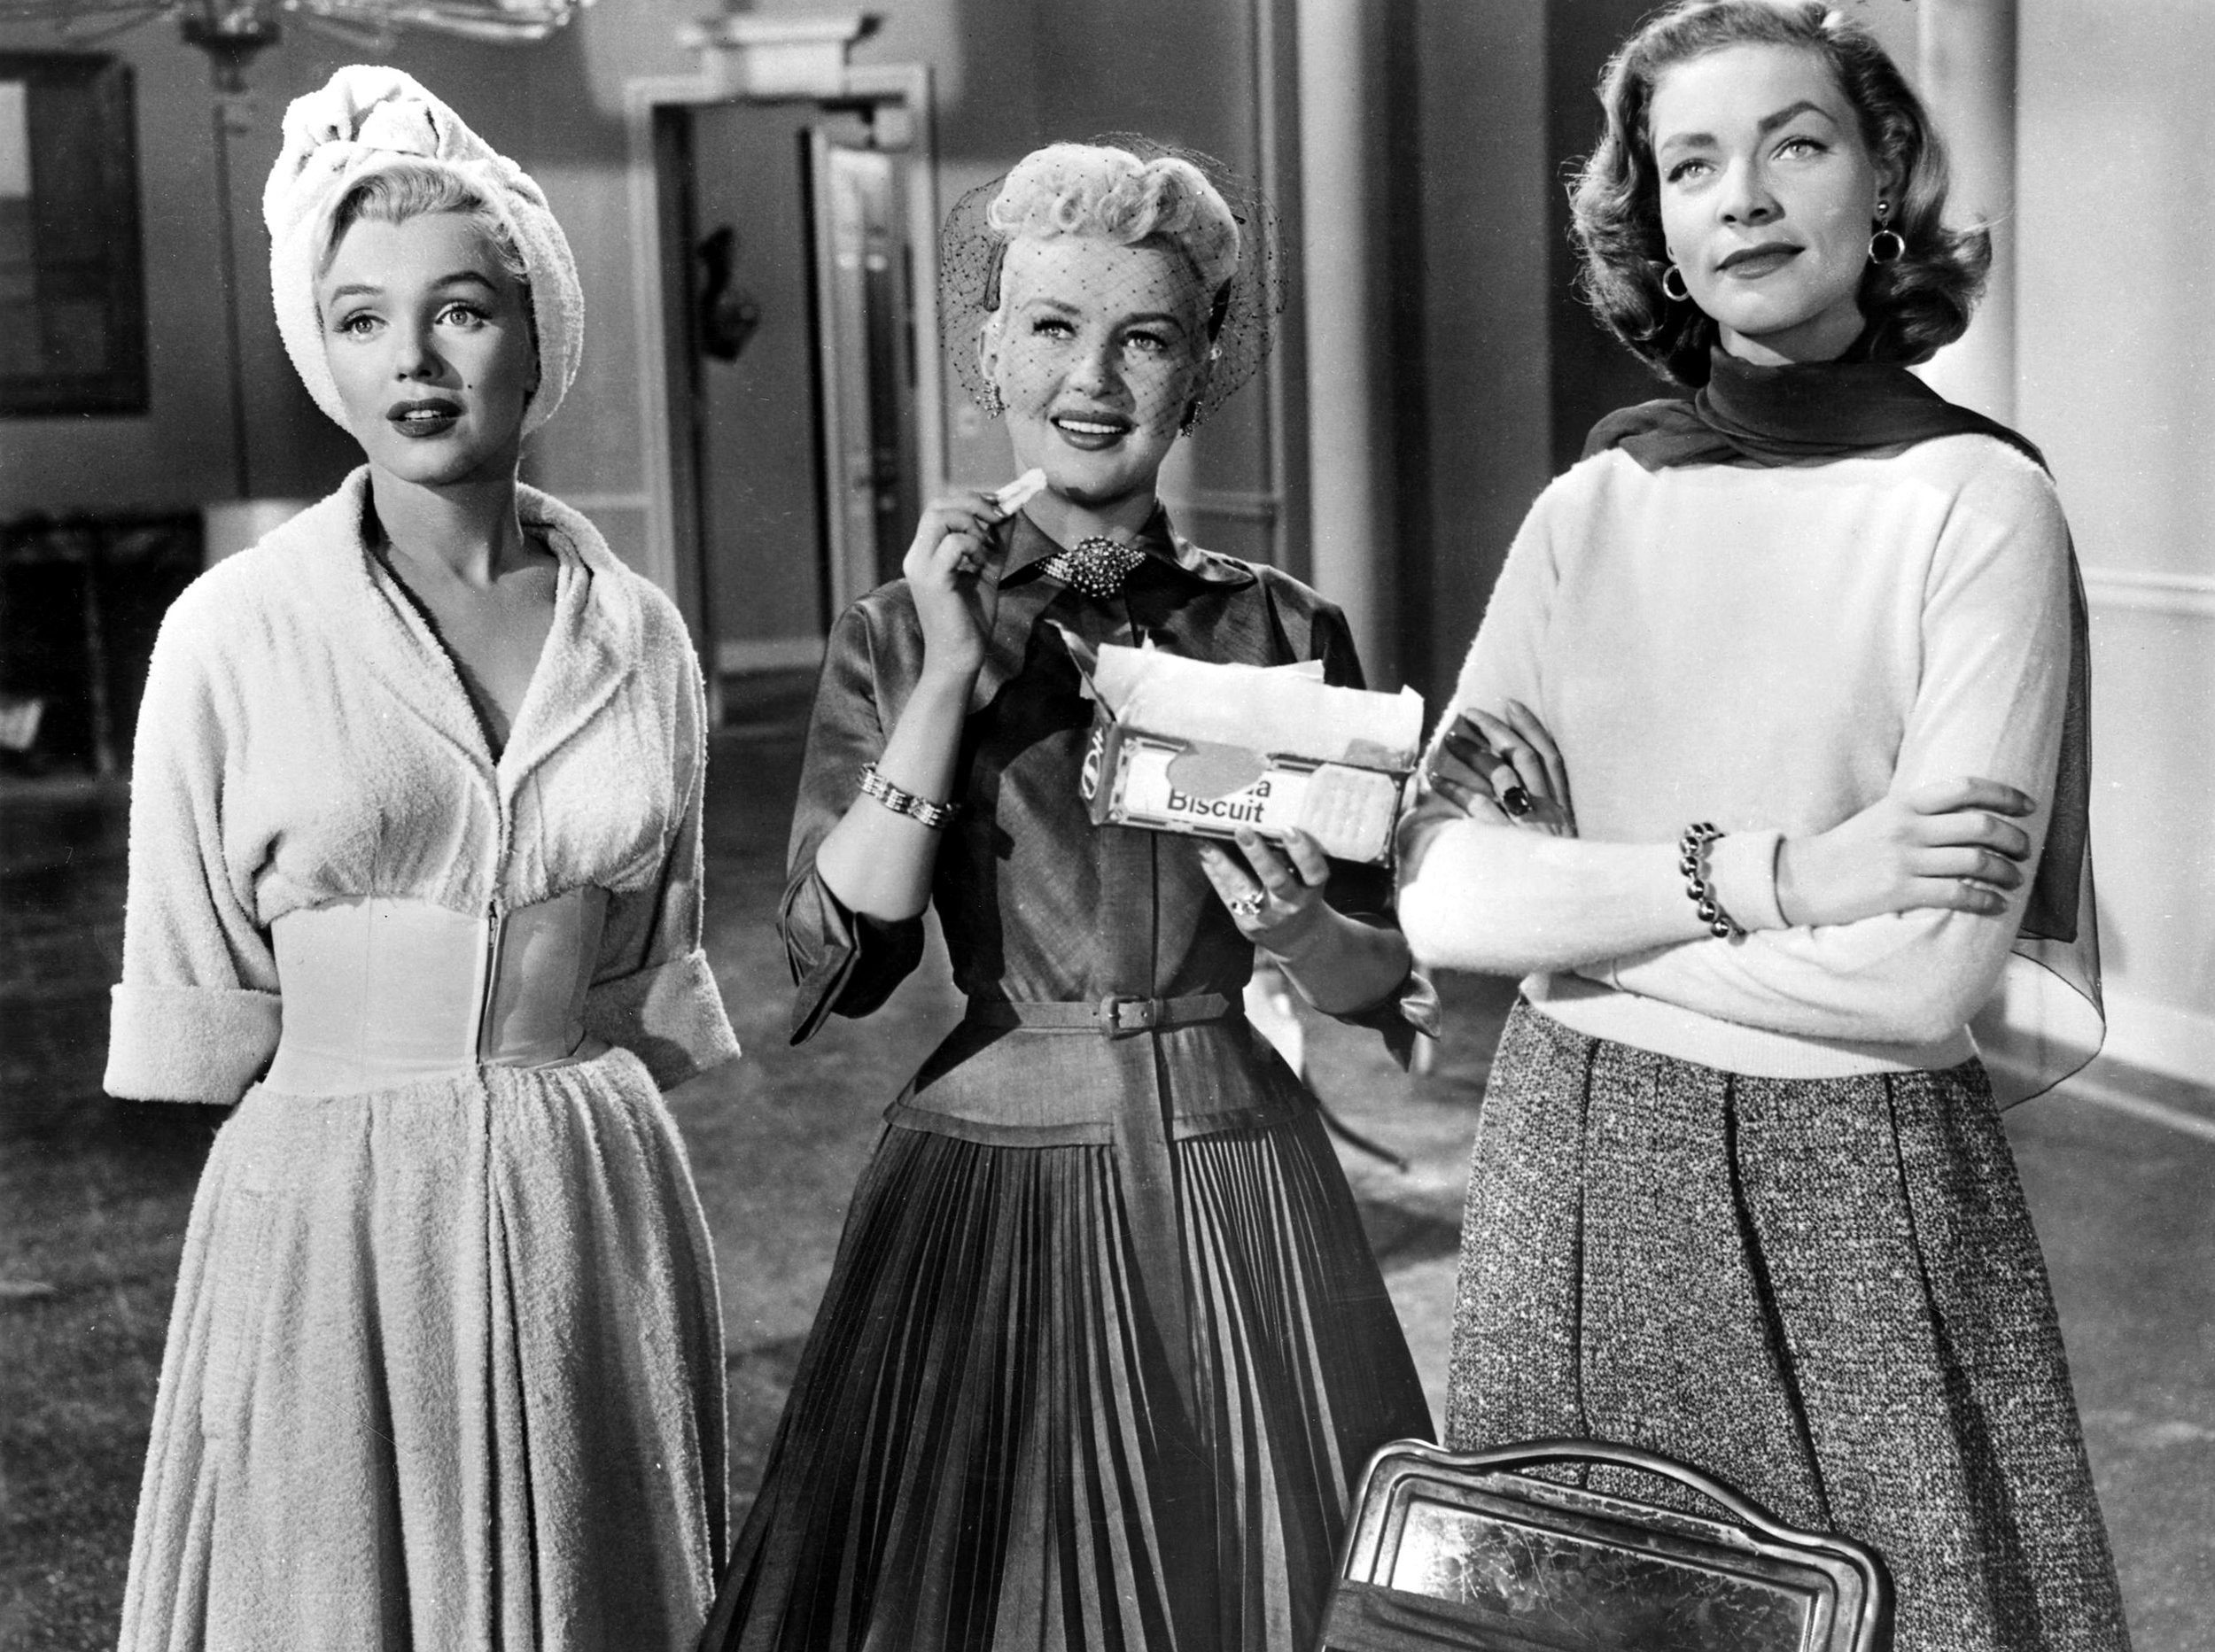 Travilla was nominated for an Academy Award for  How to Marry a Millionaire  in 1954